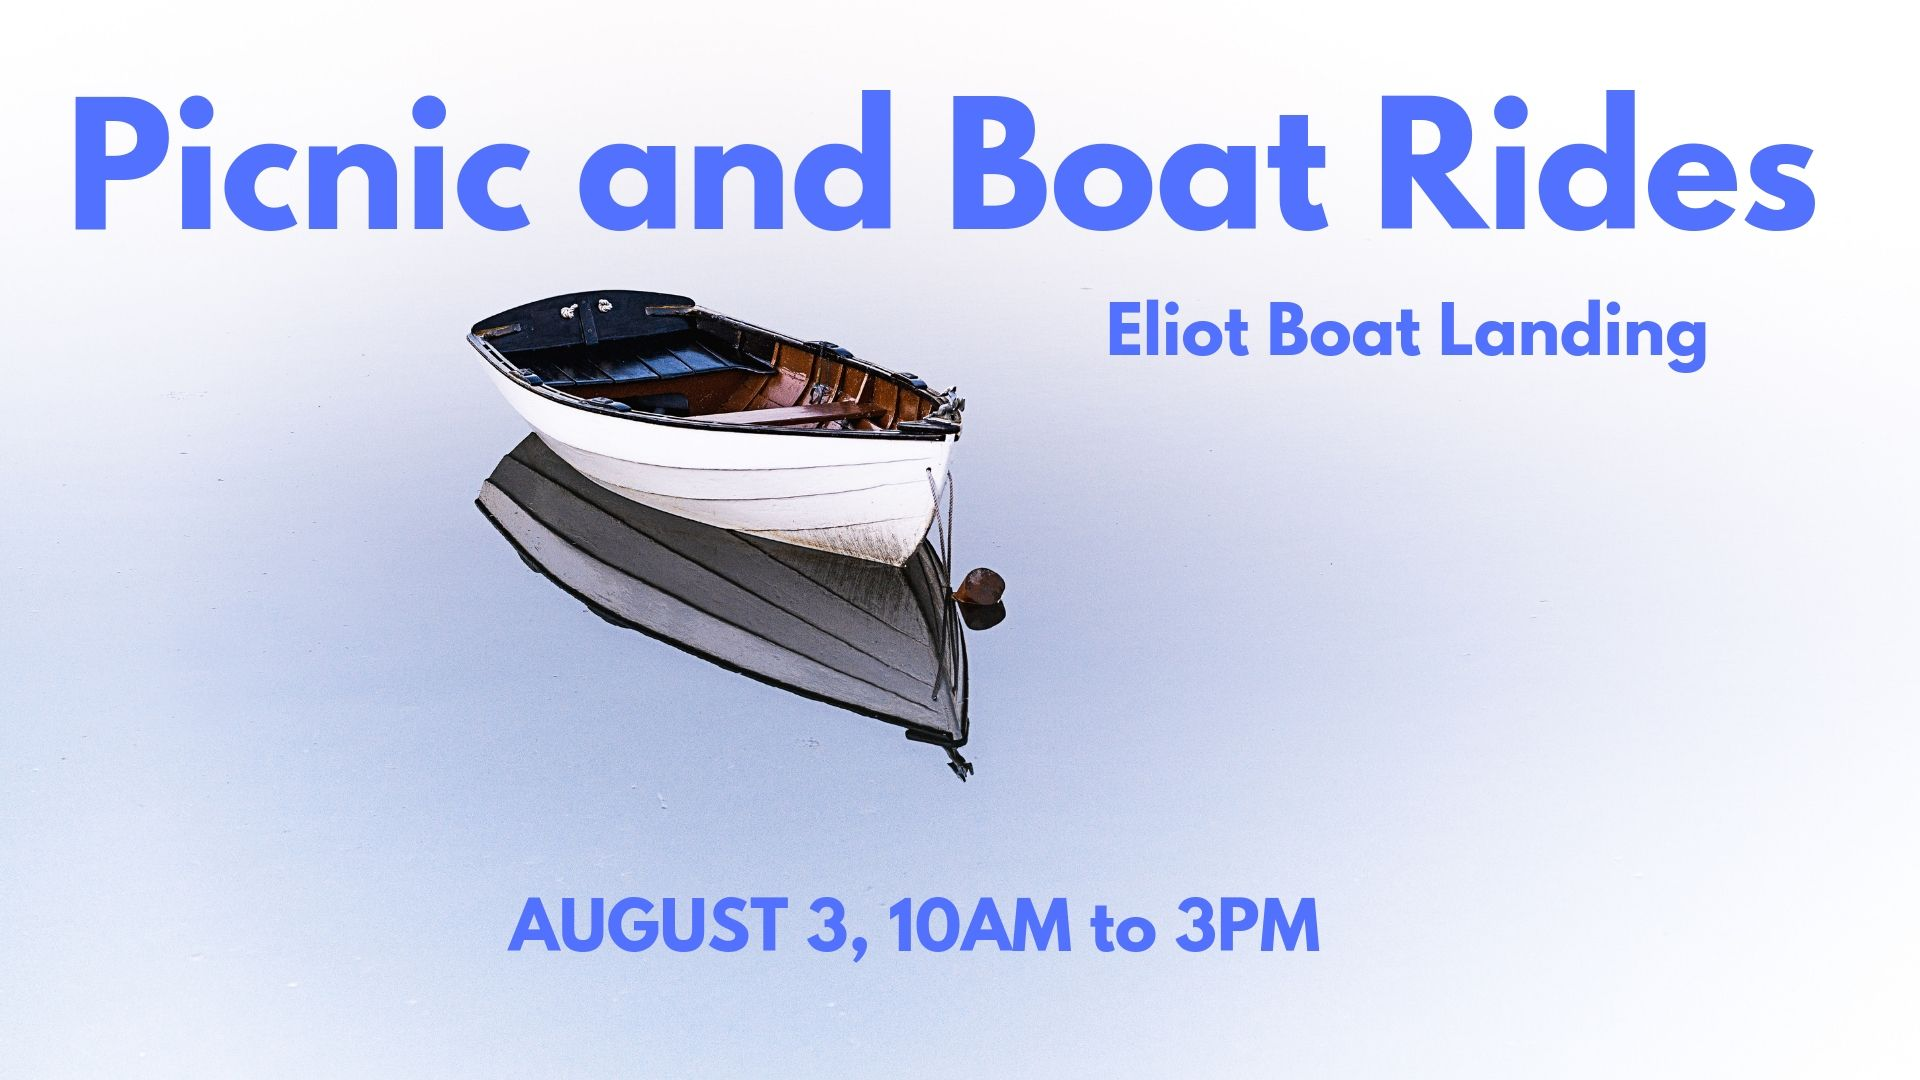 COME AND HAVE A PICNIC AND GRILL WITH US AT THE ELIOT BOAT LANDING. ARRIVE FROM 10AM. THERE IS A PLAYGROUND AND BEACH AND MARK WILL GIVE RIDES IN HIS LITTLE BOAT UP AND DOWN THE RIVER! FOR MORE DETAILS AND TO RSVP VISIT OUR FACEBOOK EVENT.  CLICK HERE  TO GO TO OUR PAGE.